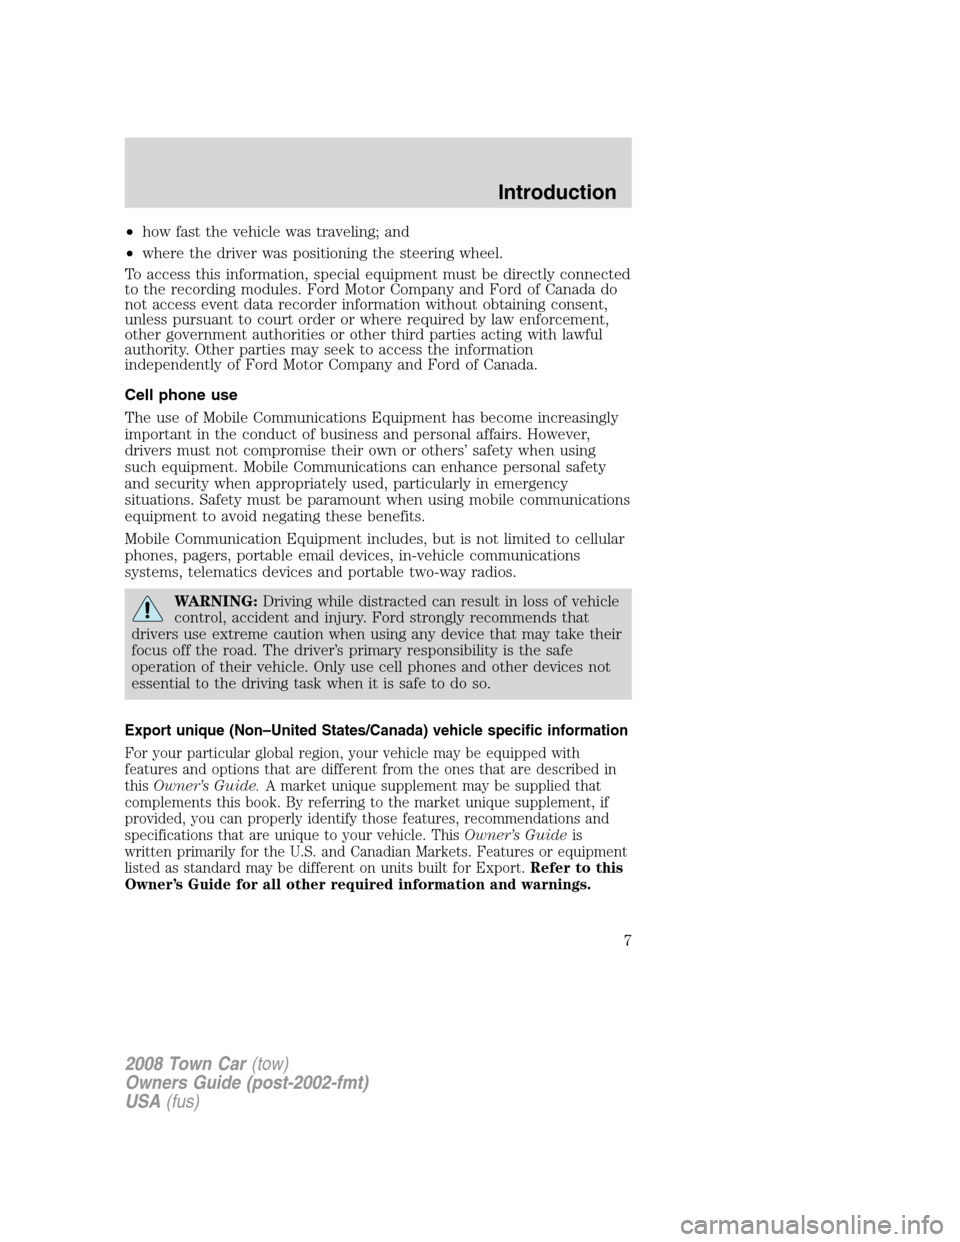 LINCOLN TOWN CAR 2008  Owners Manual, Page 7